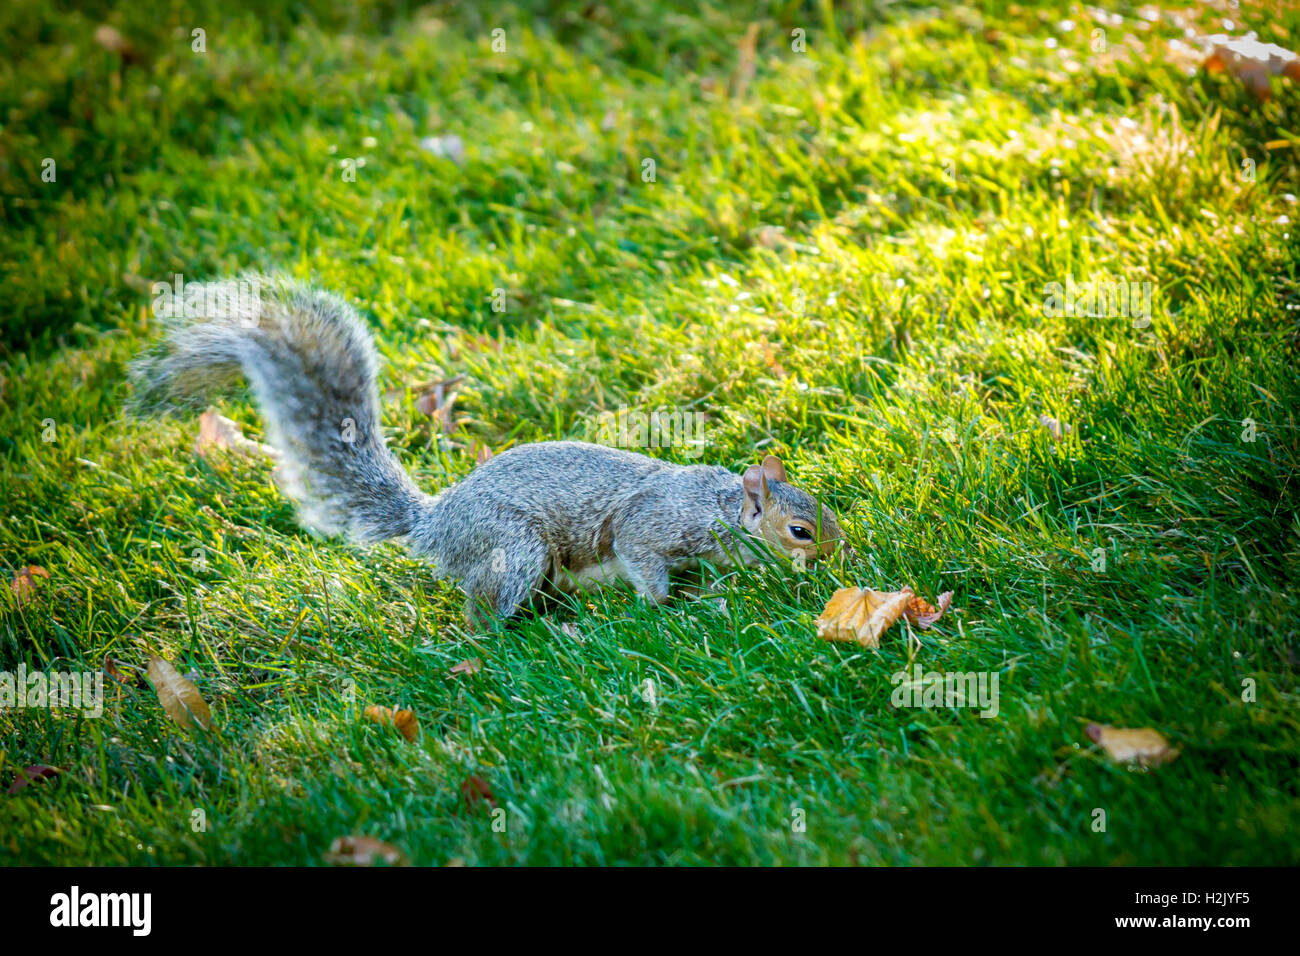 Squirrel searches for food. Stock Photo